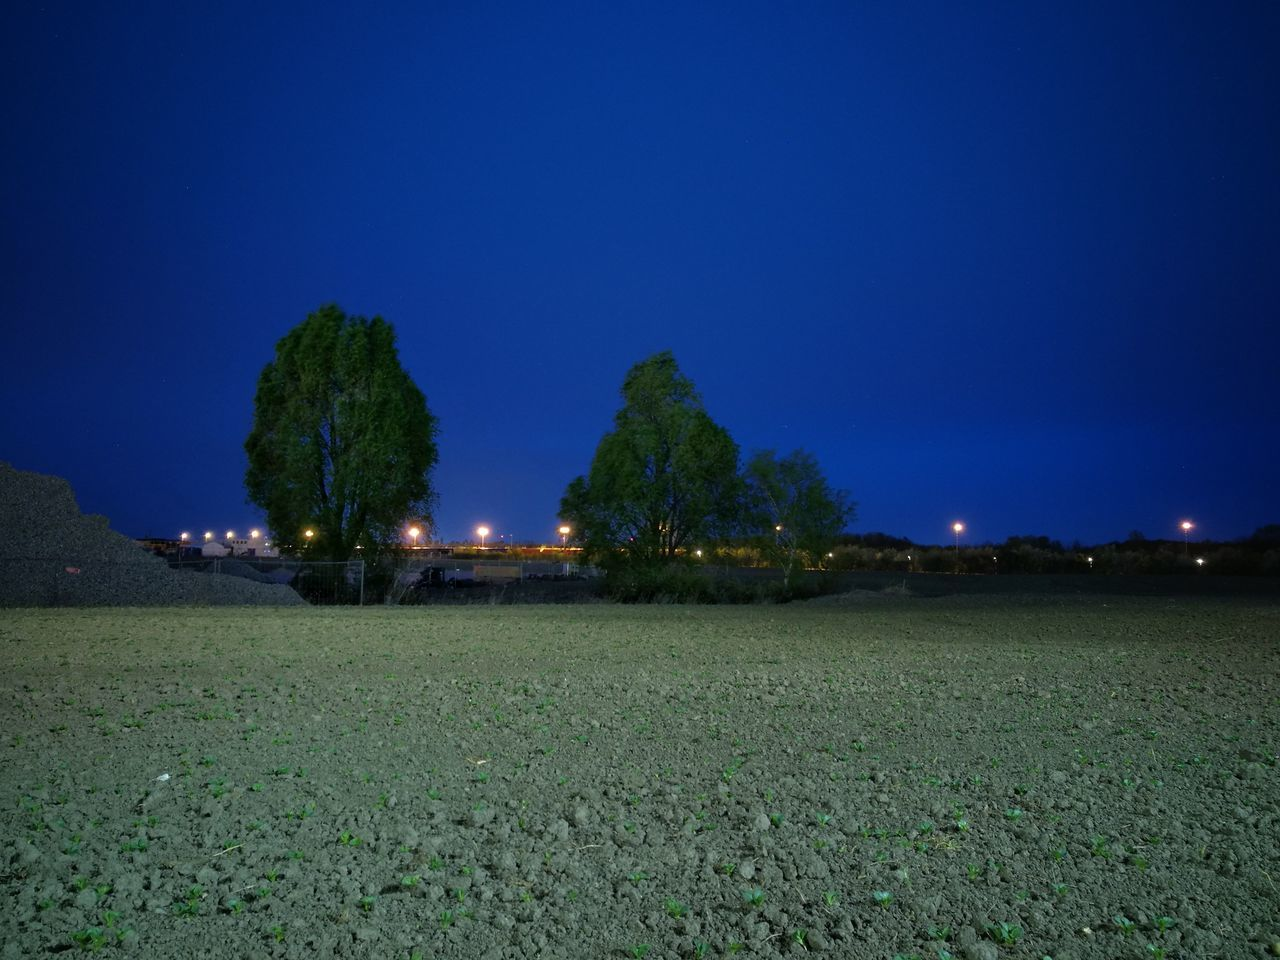 field, tranquility, nature, blue, tranquil scene, landscape, no people, clear sky, beauty in nature, scenics, night, outdoors, tree, growth, grass, sky